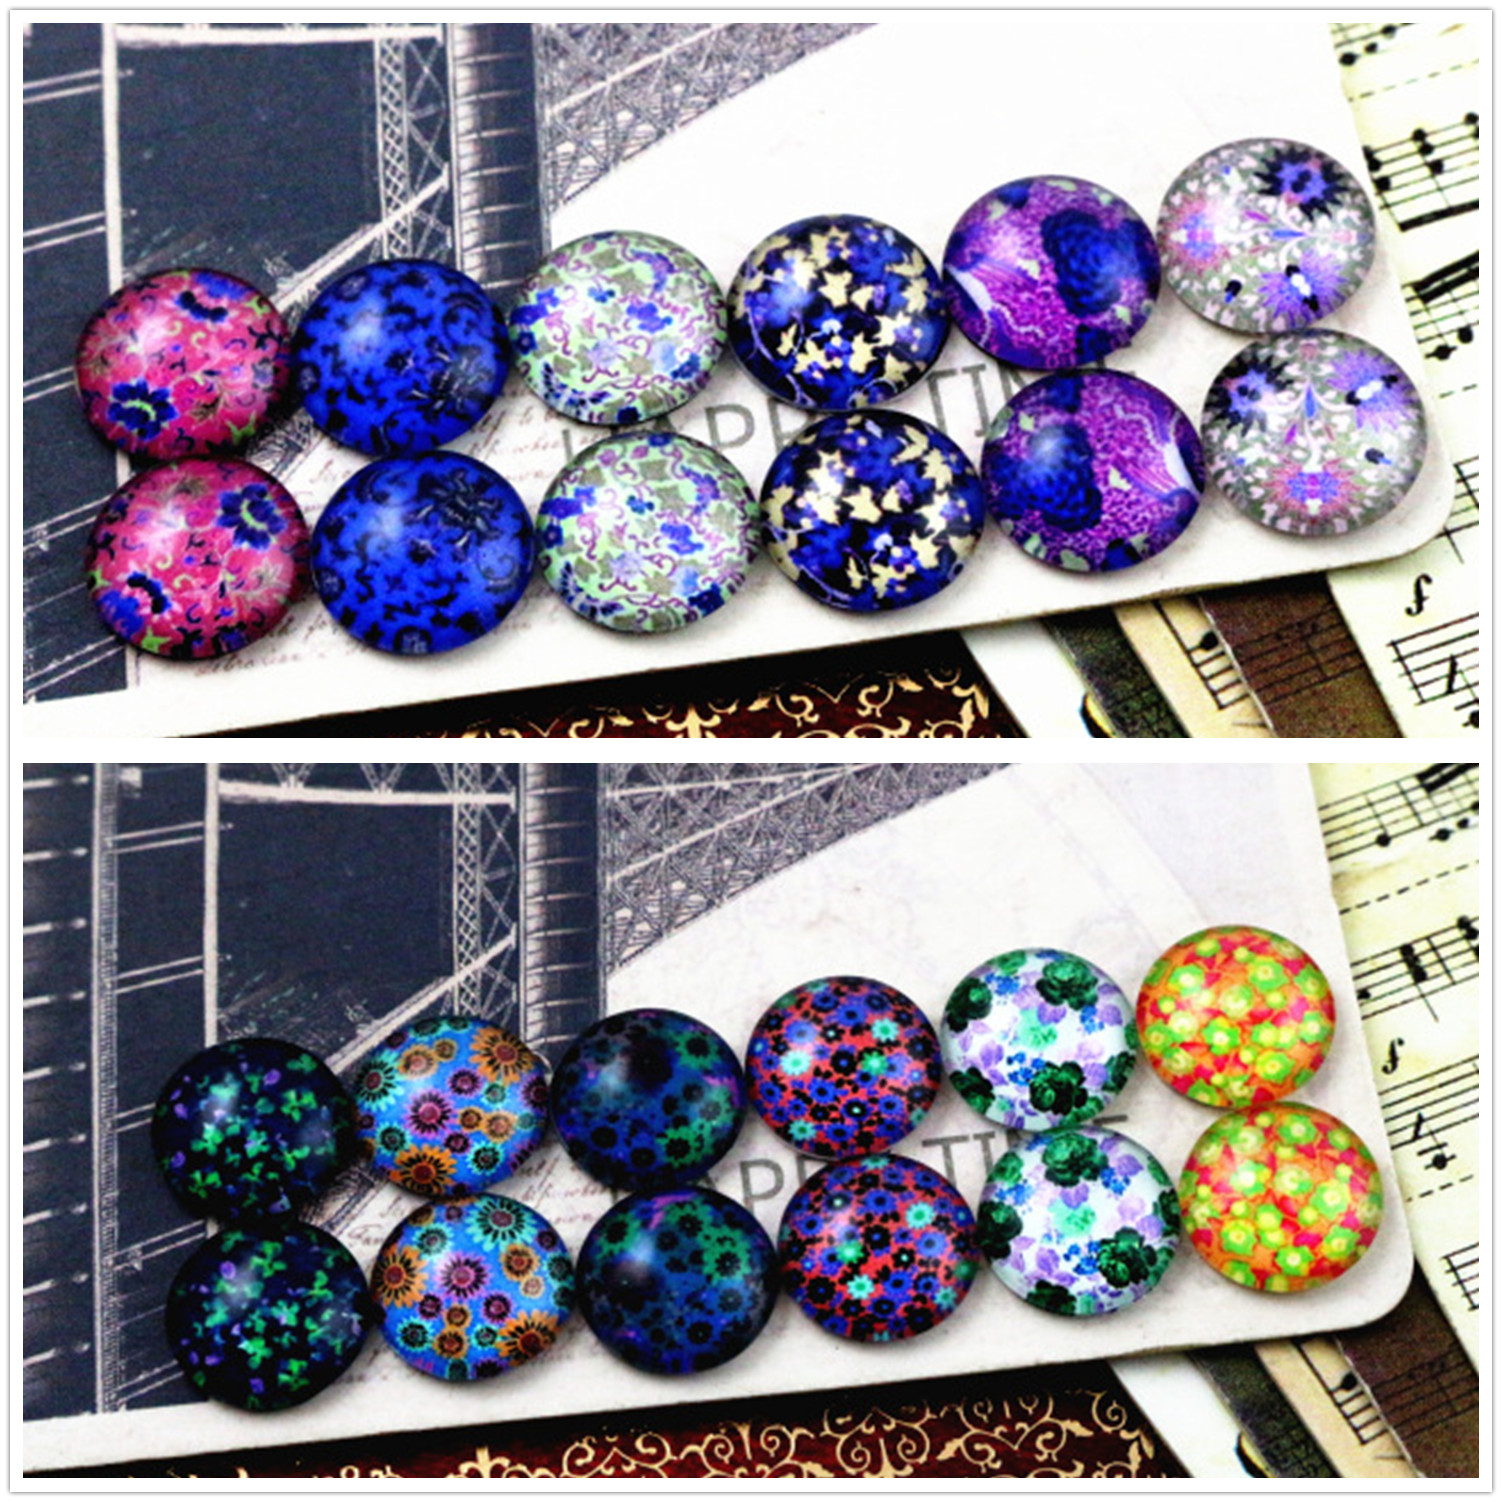 12pcs/lot (One Set) Two Style 12mm Dark Colors Flowers Handmade Glass Cabochons Pattern Domed Jewelry Accessories Supplies